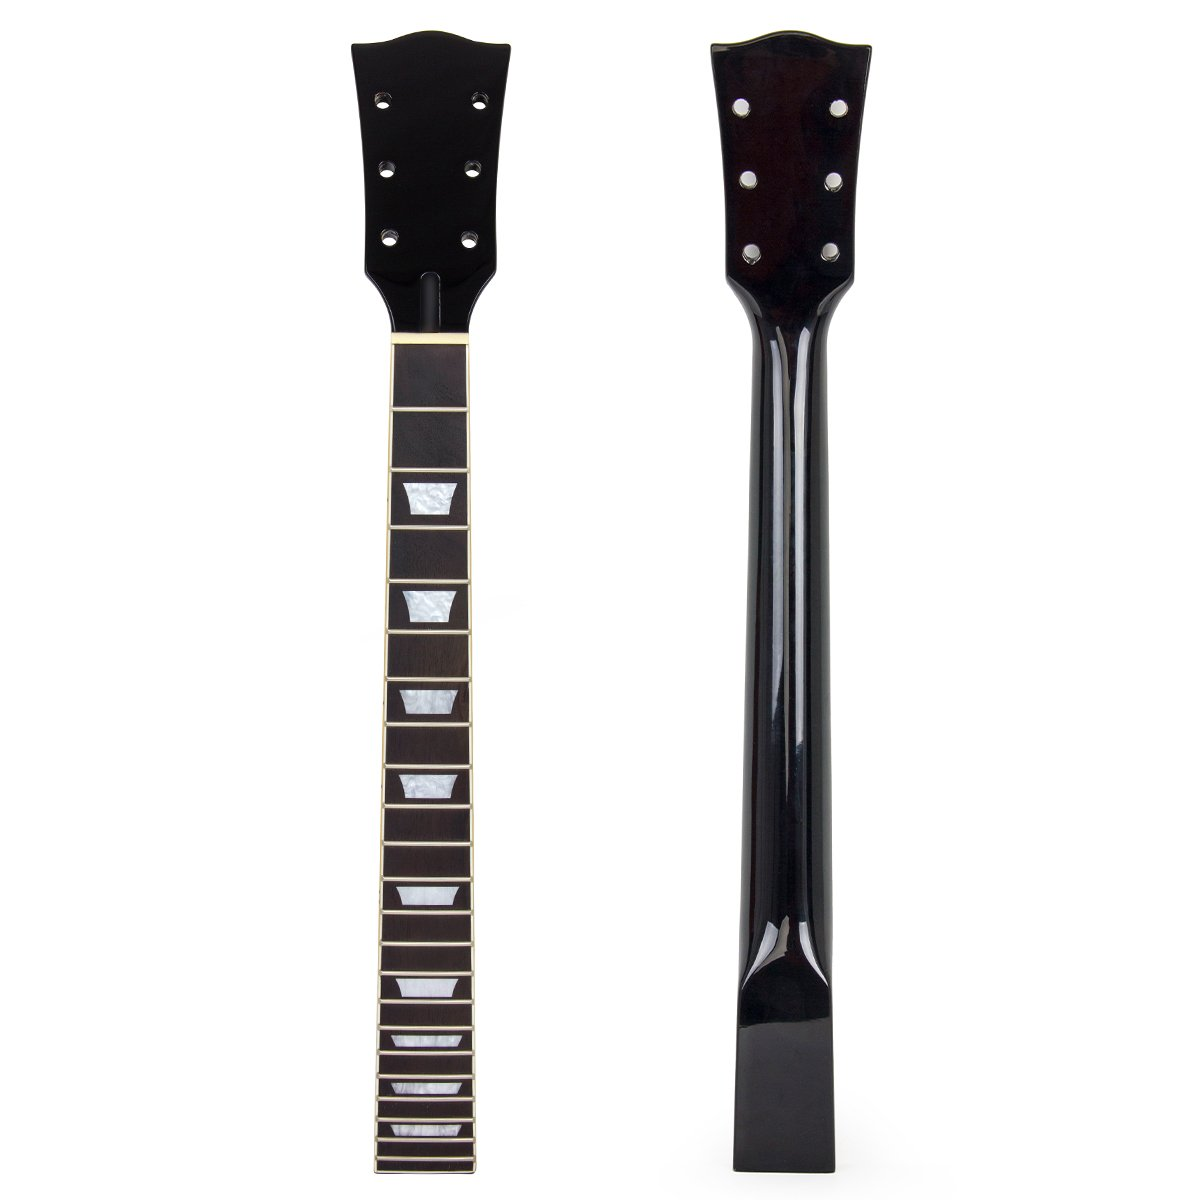 Kmise Electric Guitar Neck For Gibson Les Paul Wiring Kit High End Switch Spec Replacement Mahogany Rosewood 22 Fret Black Musical Instruments